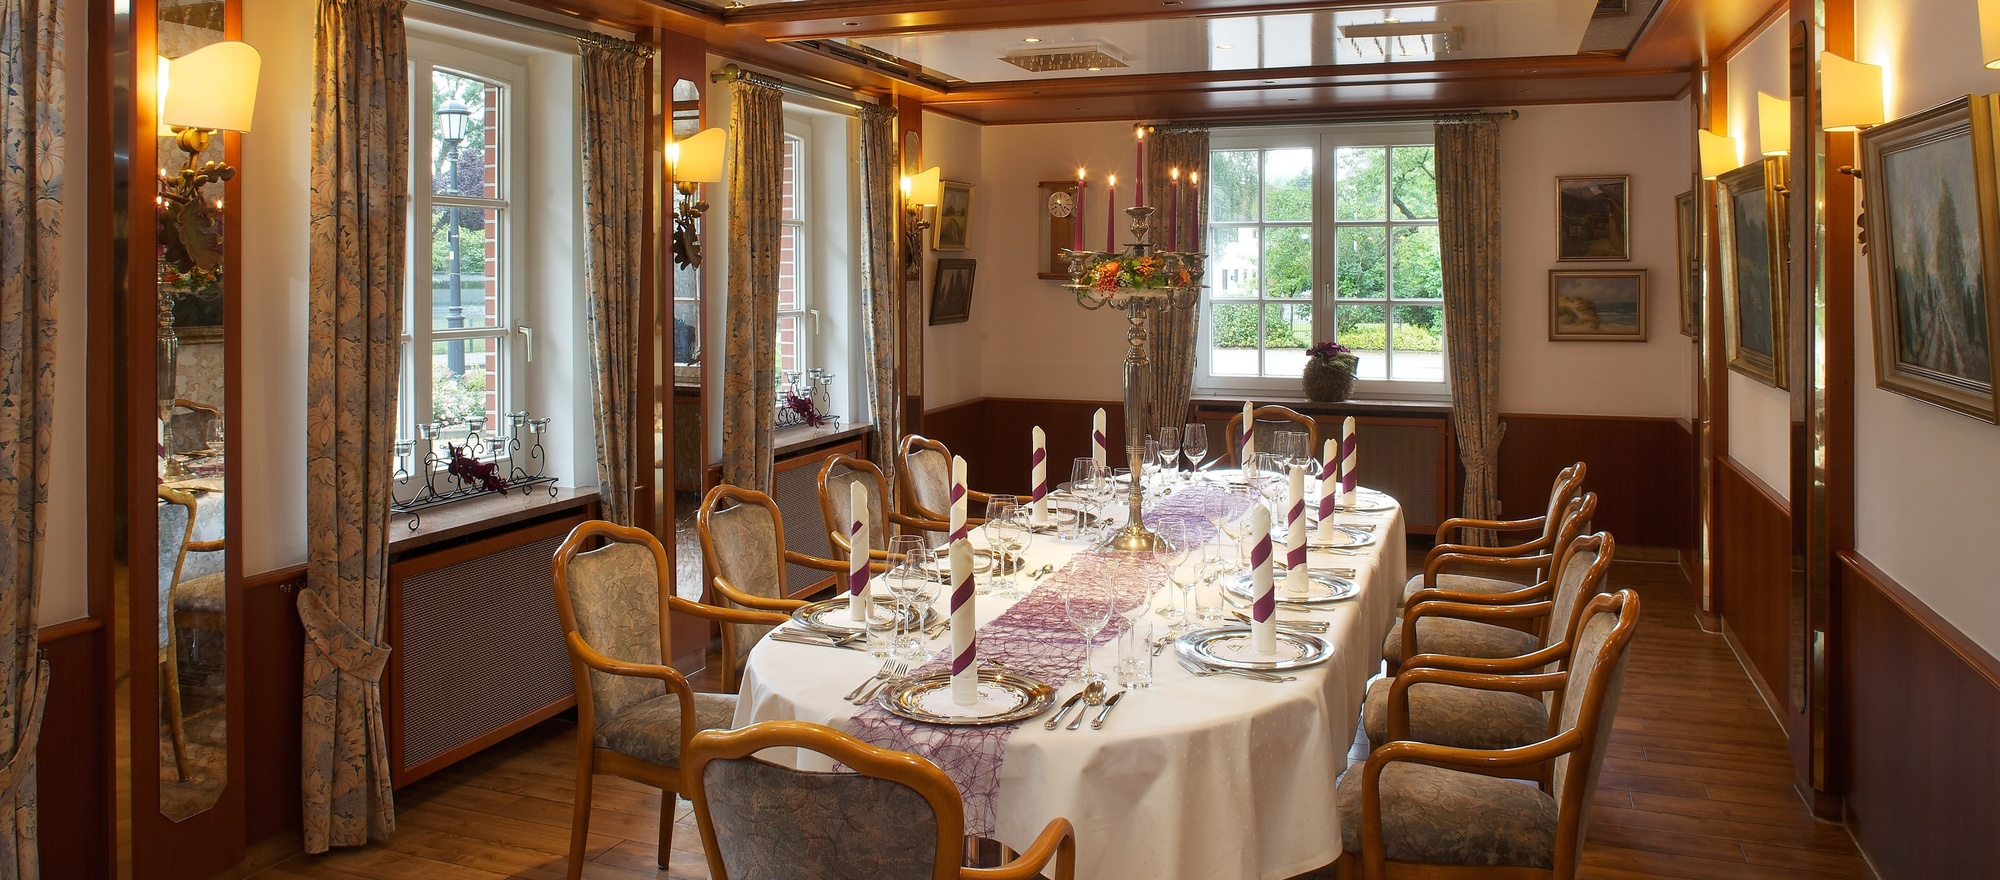 Restaurant in the Ringhotel Sellhorn in Hanstedt, 4-stars hotel in the Luneburg Heath region